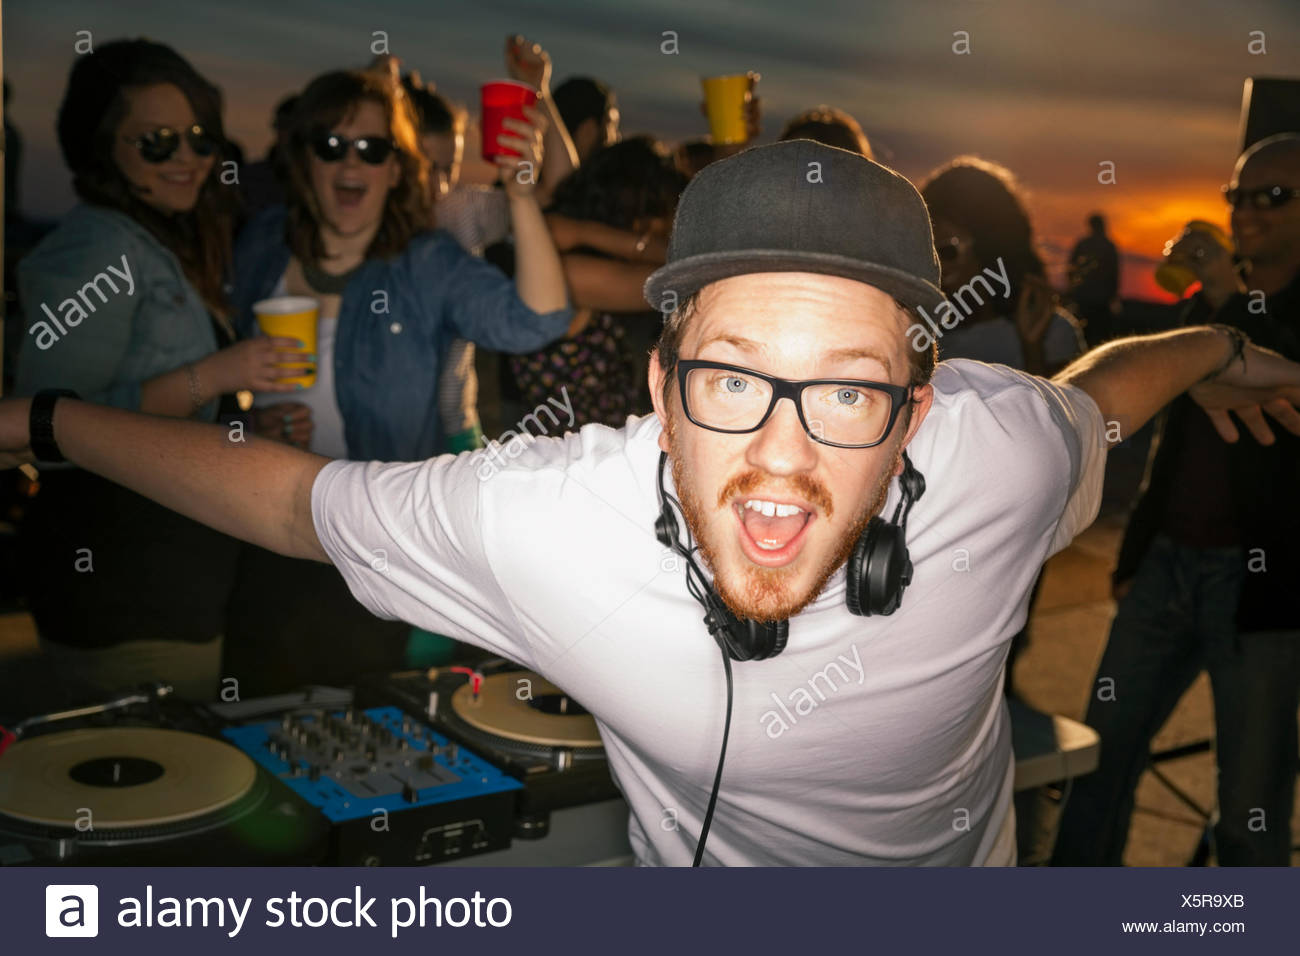 Portrait of enthusiastic DJ at rooftop party - Stock Image